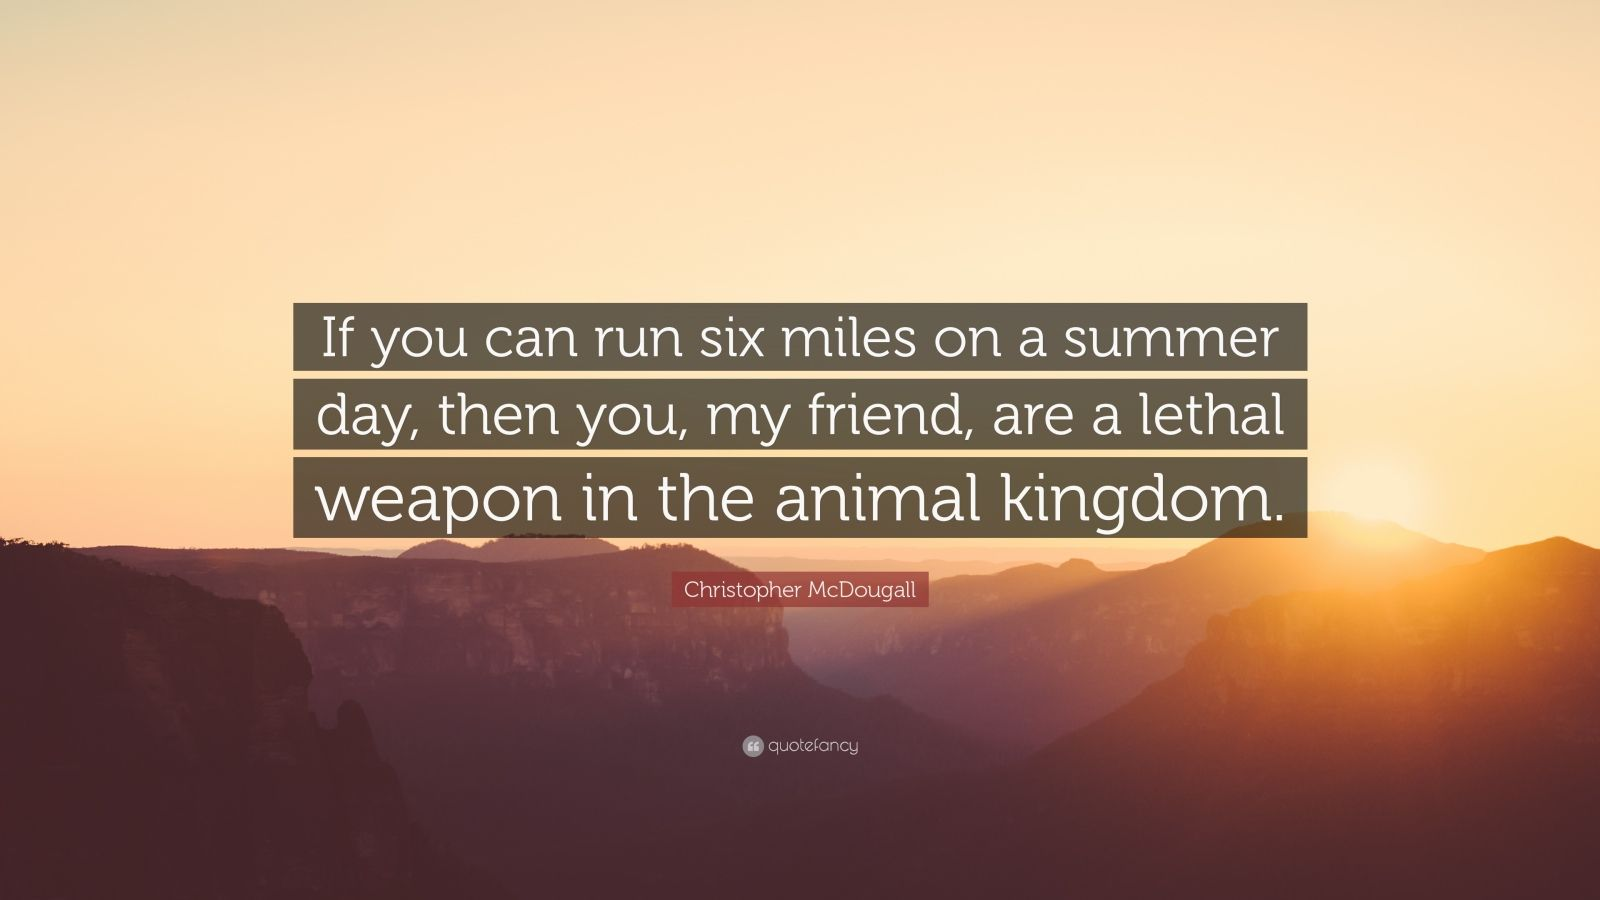 """Christopher McDougall Quote: """"If you can run six miles on a summer day, then you, my friend, are a lethal weapon in the animal kingdom."""""""